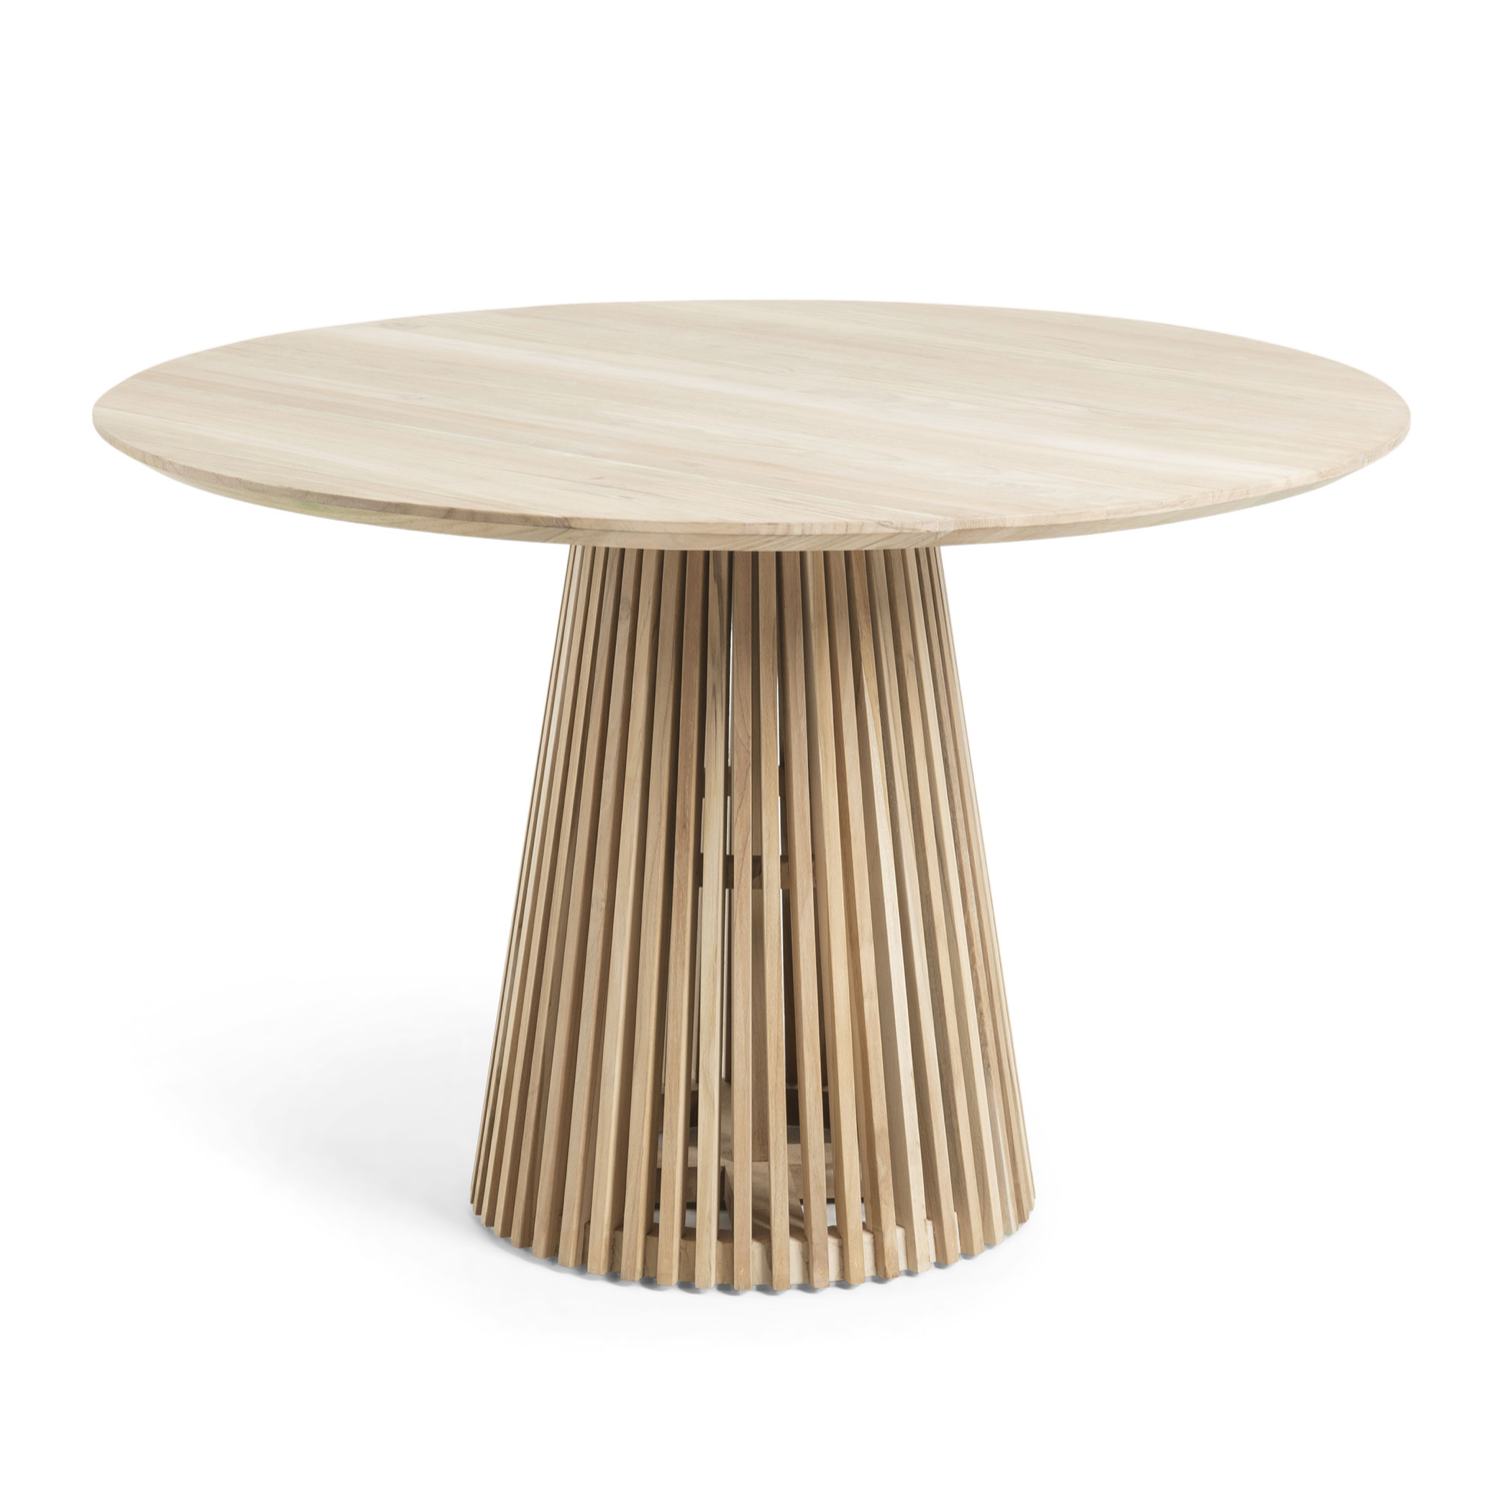 Finn Round Dining Table | Natural Teak